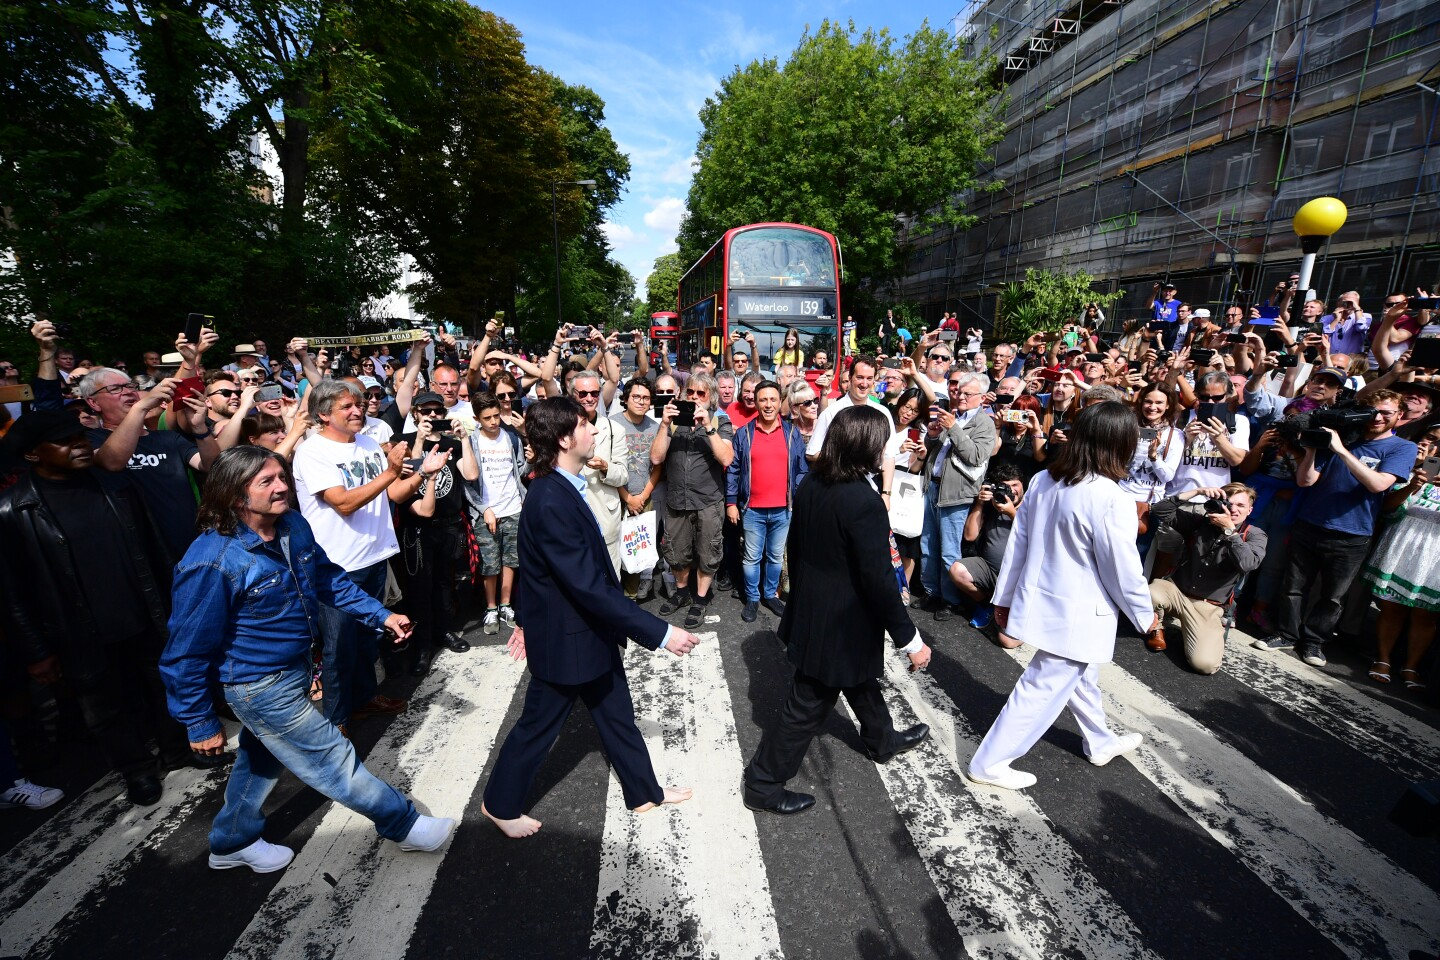 LONDON, ENGLAND - AUGUST 08: Beatles impersonators recreate the iconic 'Abbey Road' photograph made 50 years ago today, on August 8, 2019 in London, England. 50 years ago today, John Lennon, Paul McCartney, George Harrison and Ringo Starr held up traffic on the zebra crossing outside their recording studio in north London to get the cover shot for the album, Abbey Road. (Photo by Leon Neal/Getty Images) ** OUTS - ELSENT, FPG, CM - OUTS * NM, PH, VA if sourced by CT, LA or MoD **